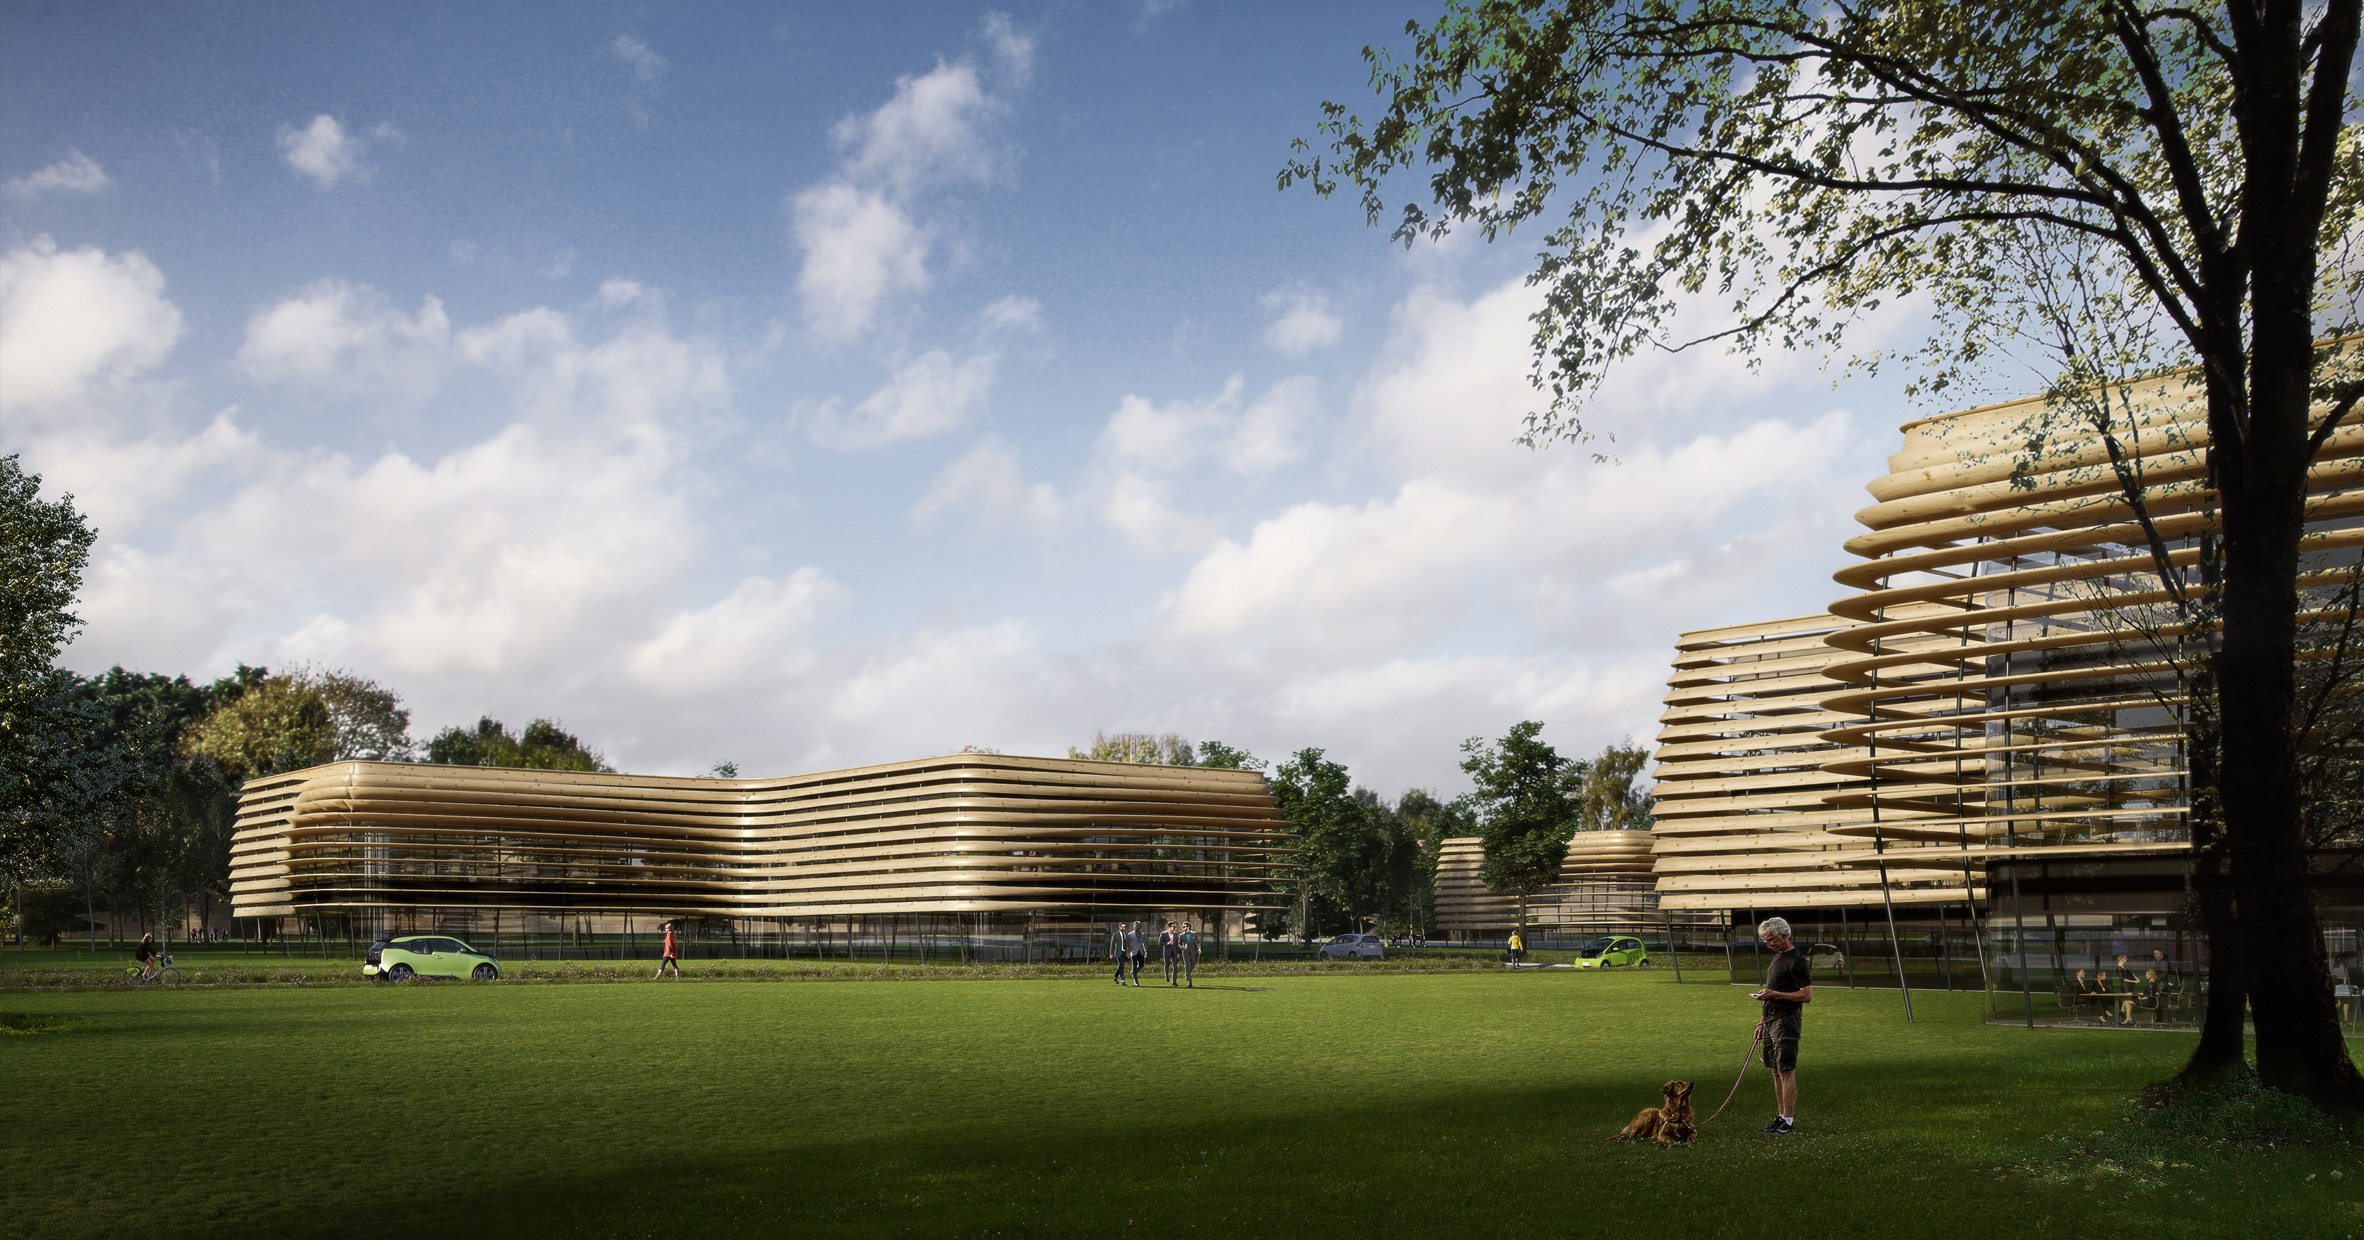 Zaha Hadid Architects reveals greenhouse-like technology hub to accompany world's first wooden football stadium